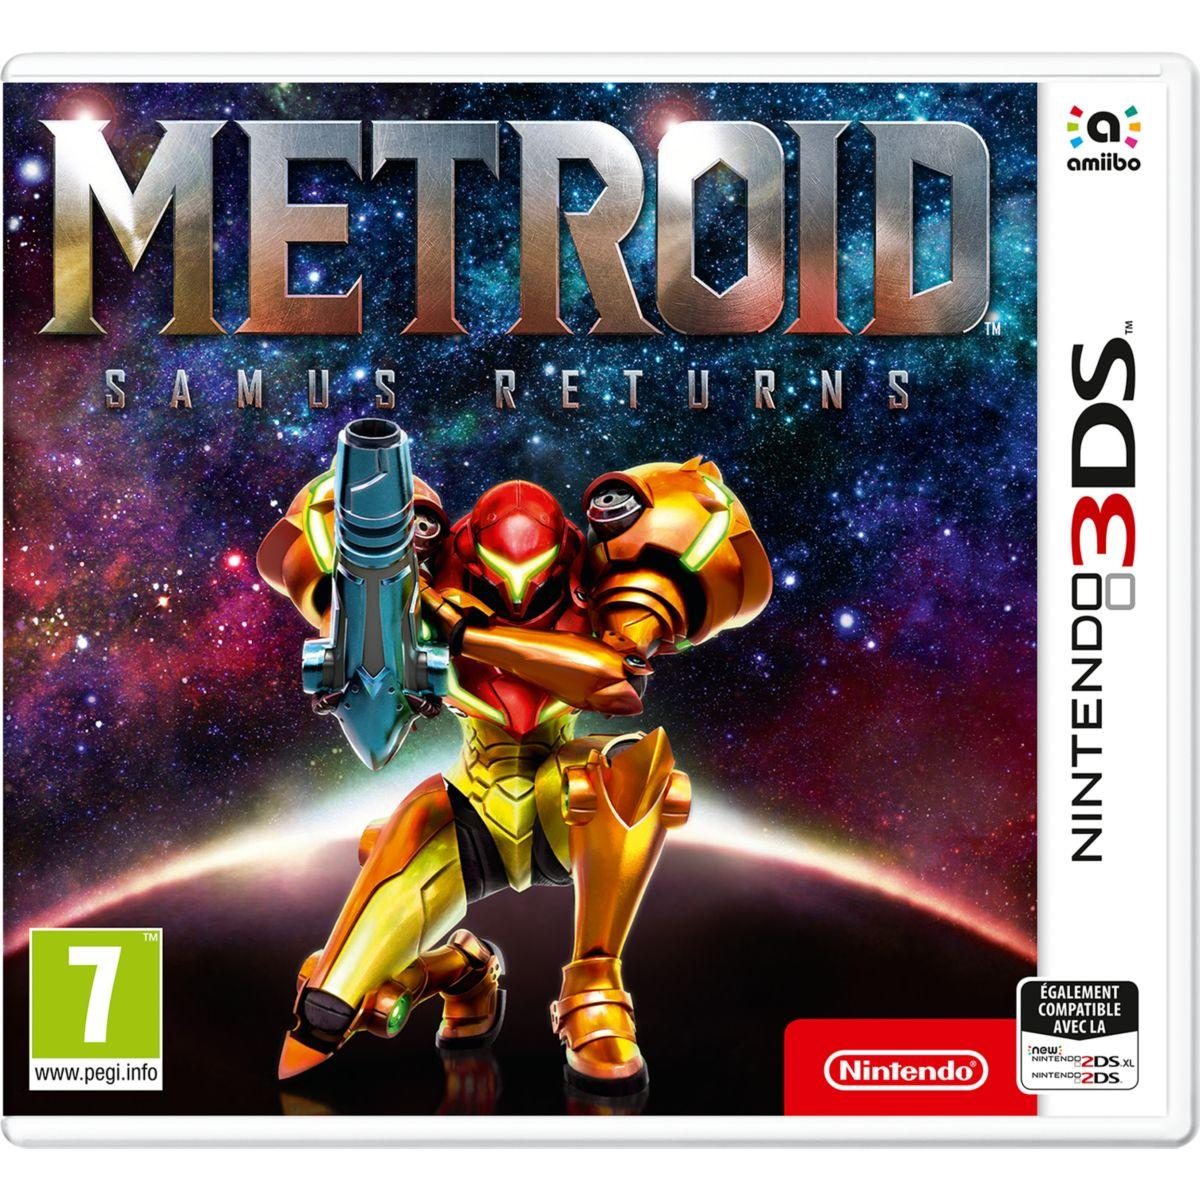 Jeu 3ds nintendo metroid samus returns (photo)